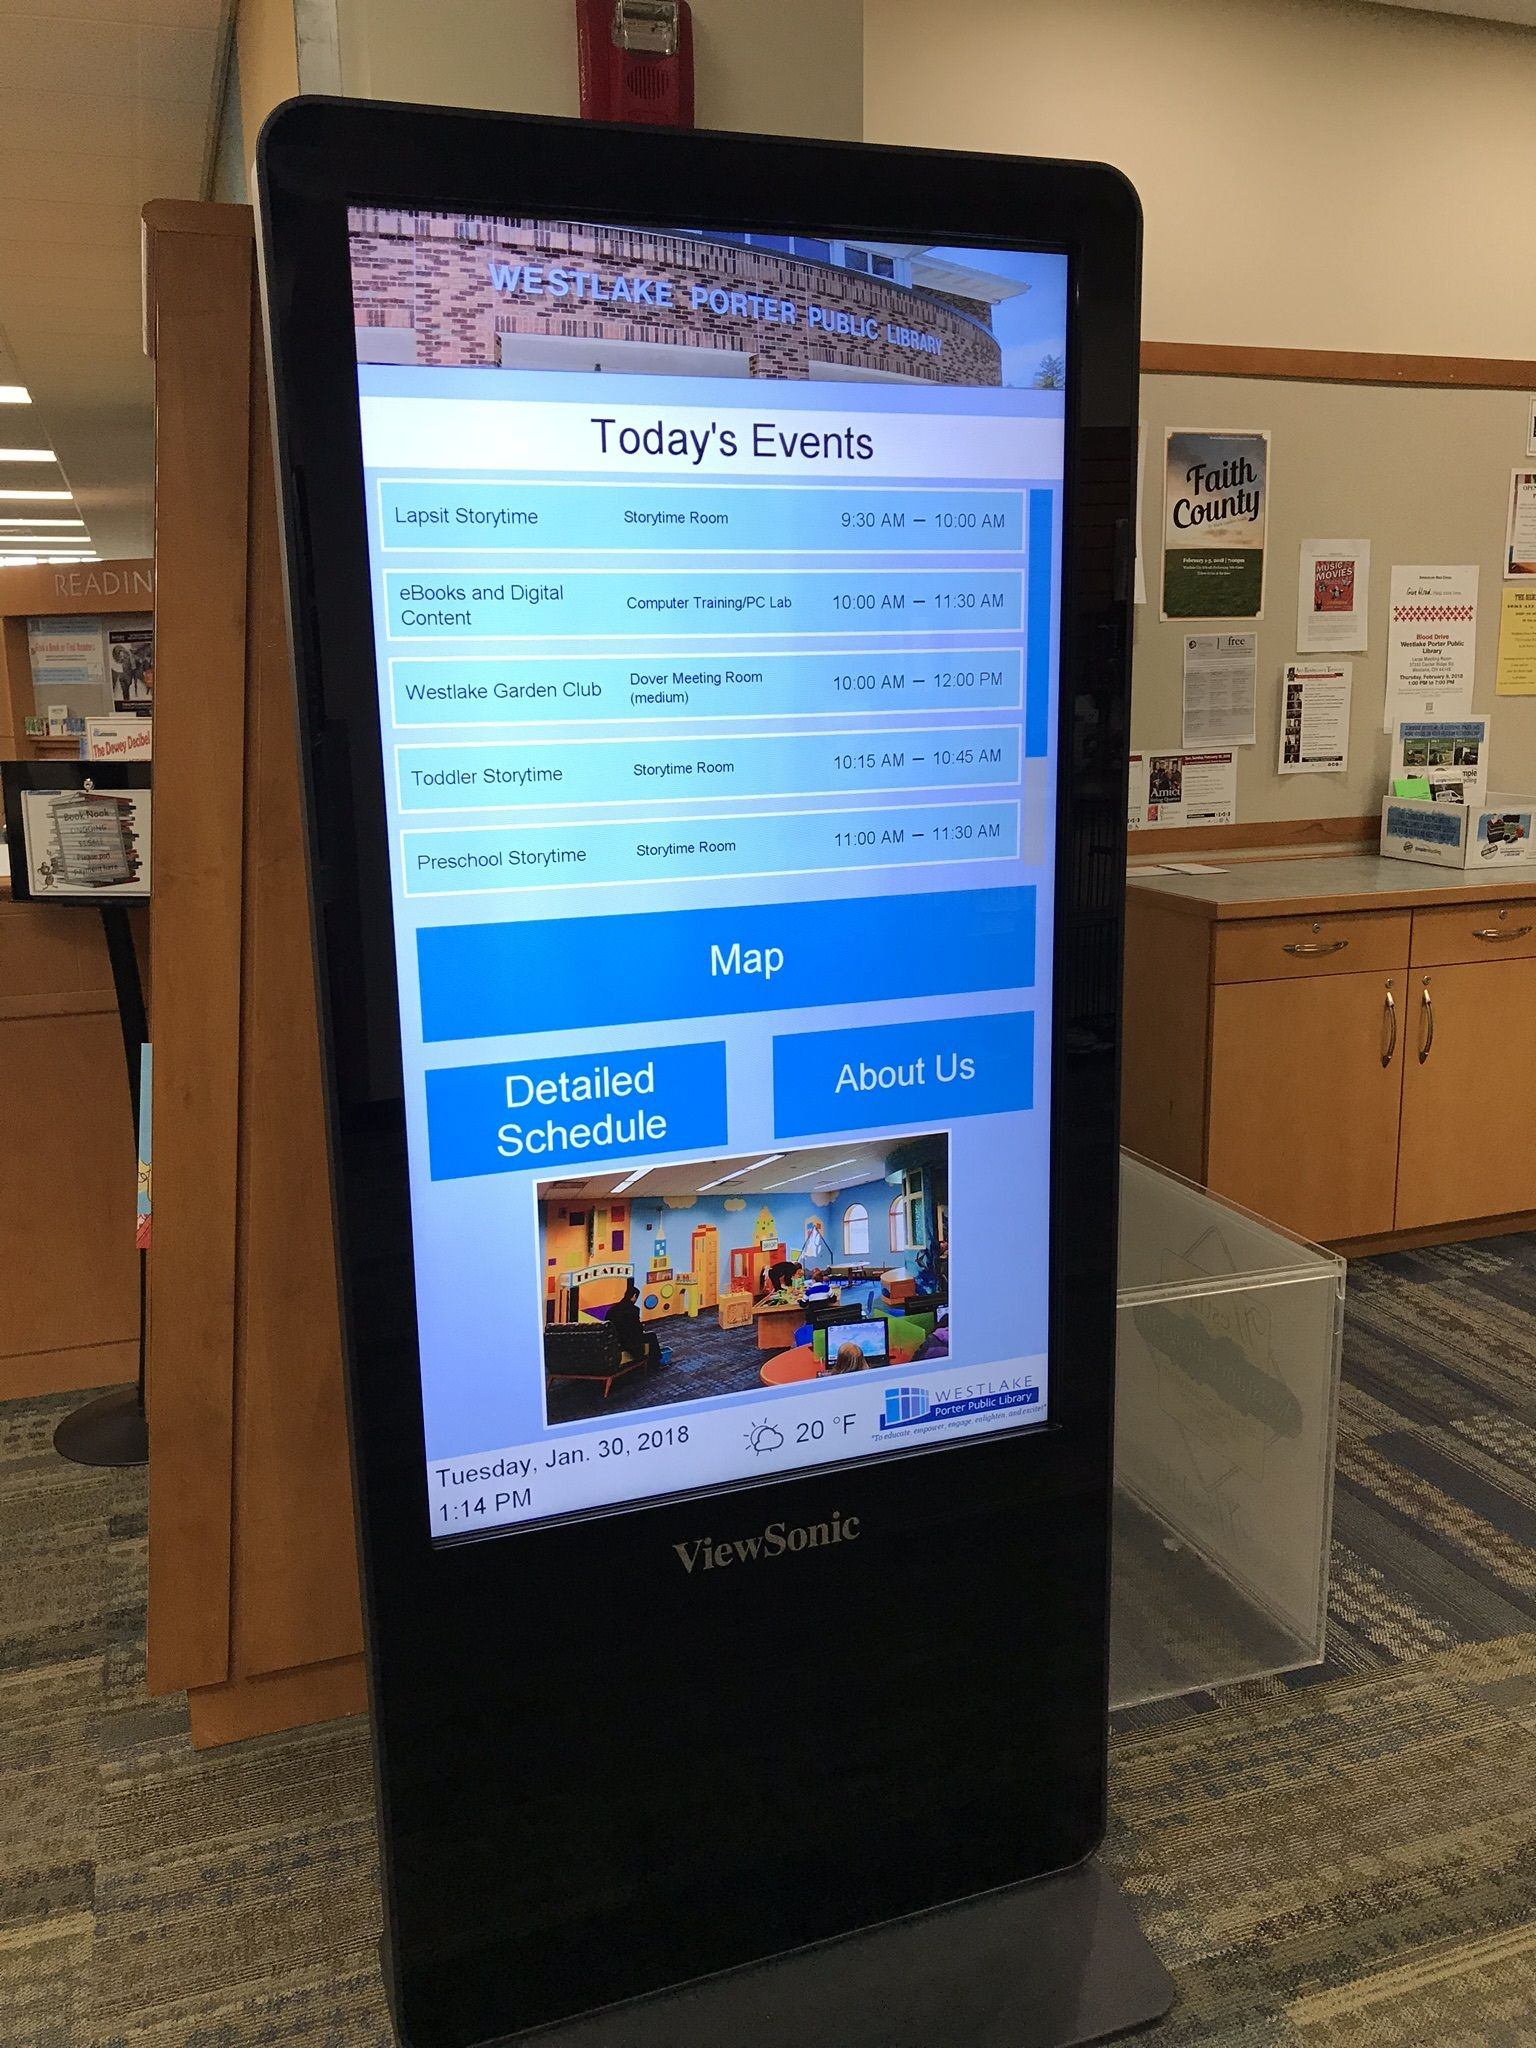 caa7180faeaa359c993bb977a516bd1f - Event Signage: Reasons and Ideas to Use Digital Signage in Events